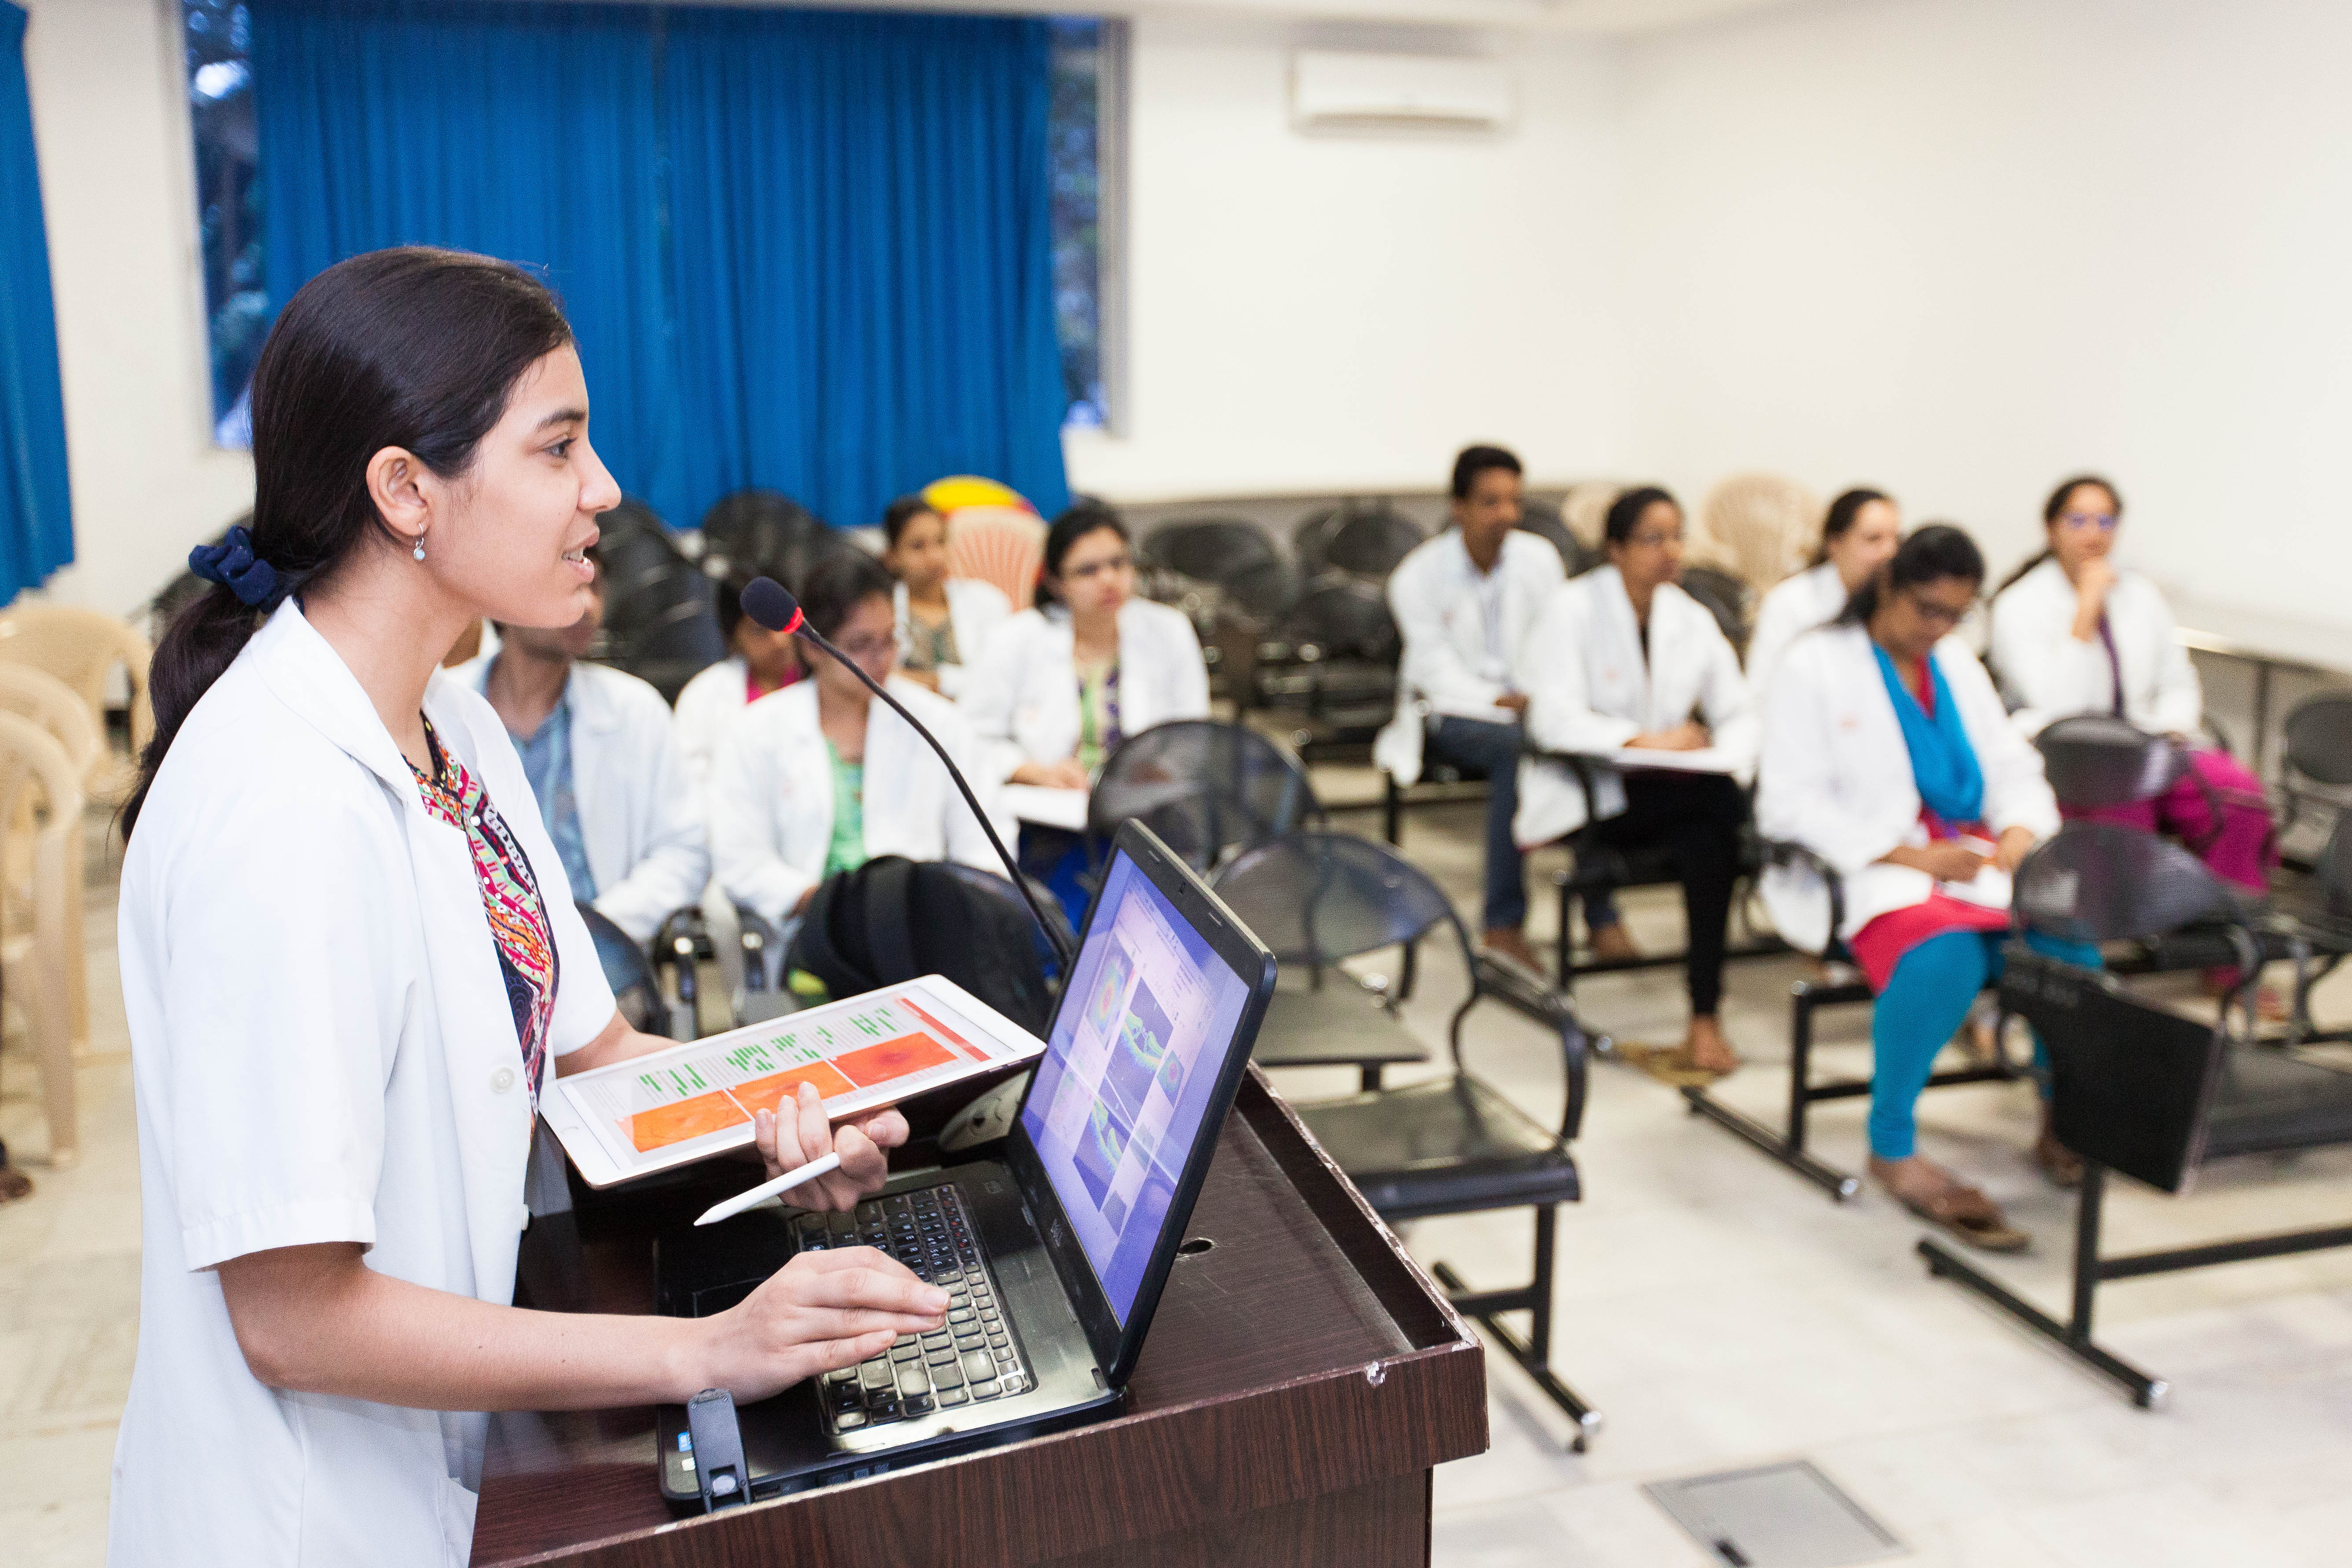 Ophthalmology Courses in India, Ophthalmology Courses